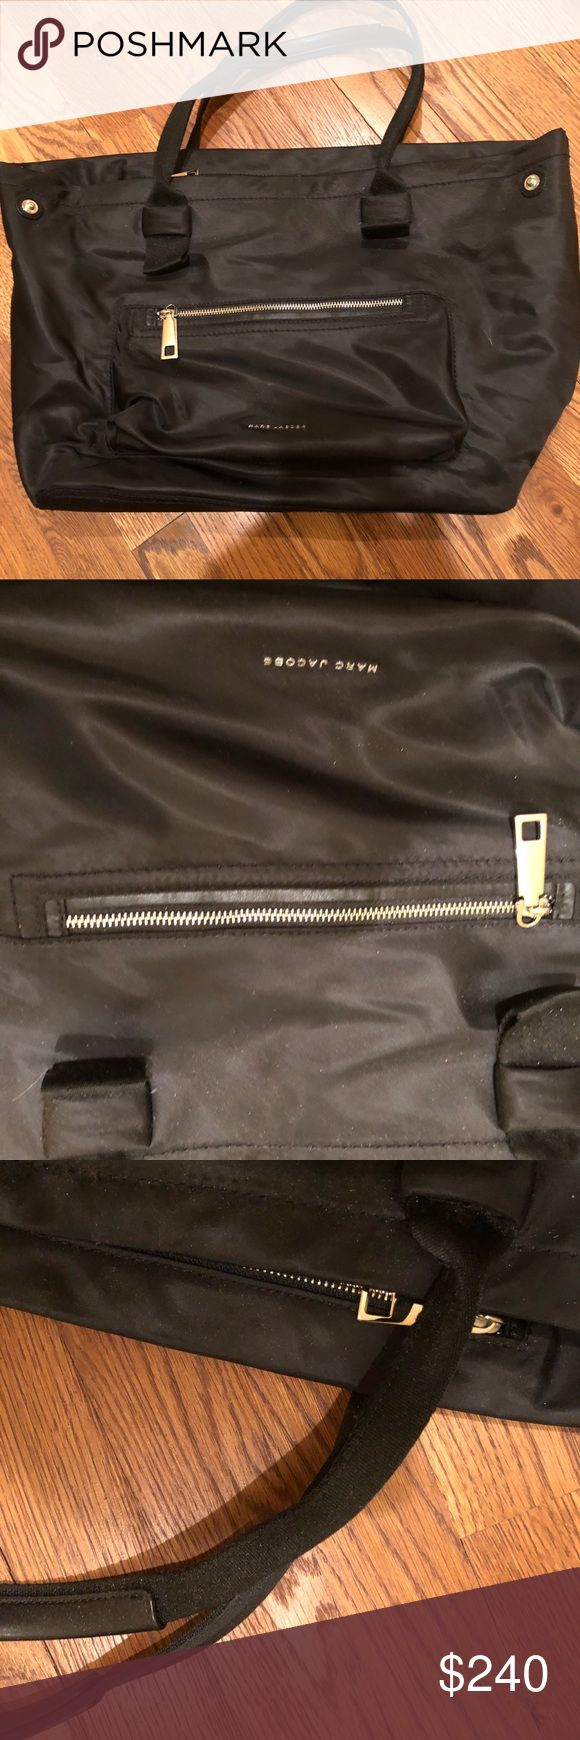 Marc Jacobs Nylon Tote bag Marc Jacobs Nylon Tote bag.  Like new condition.  Worn for a few weeks 20 x10.  Has zippers. Have original tag Marc Jacobs Bags